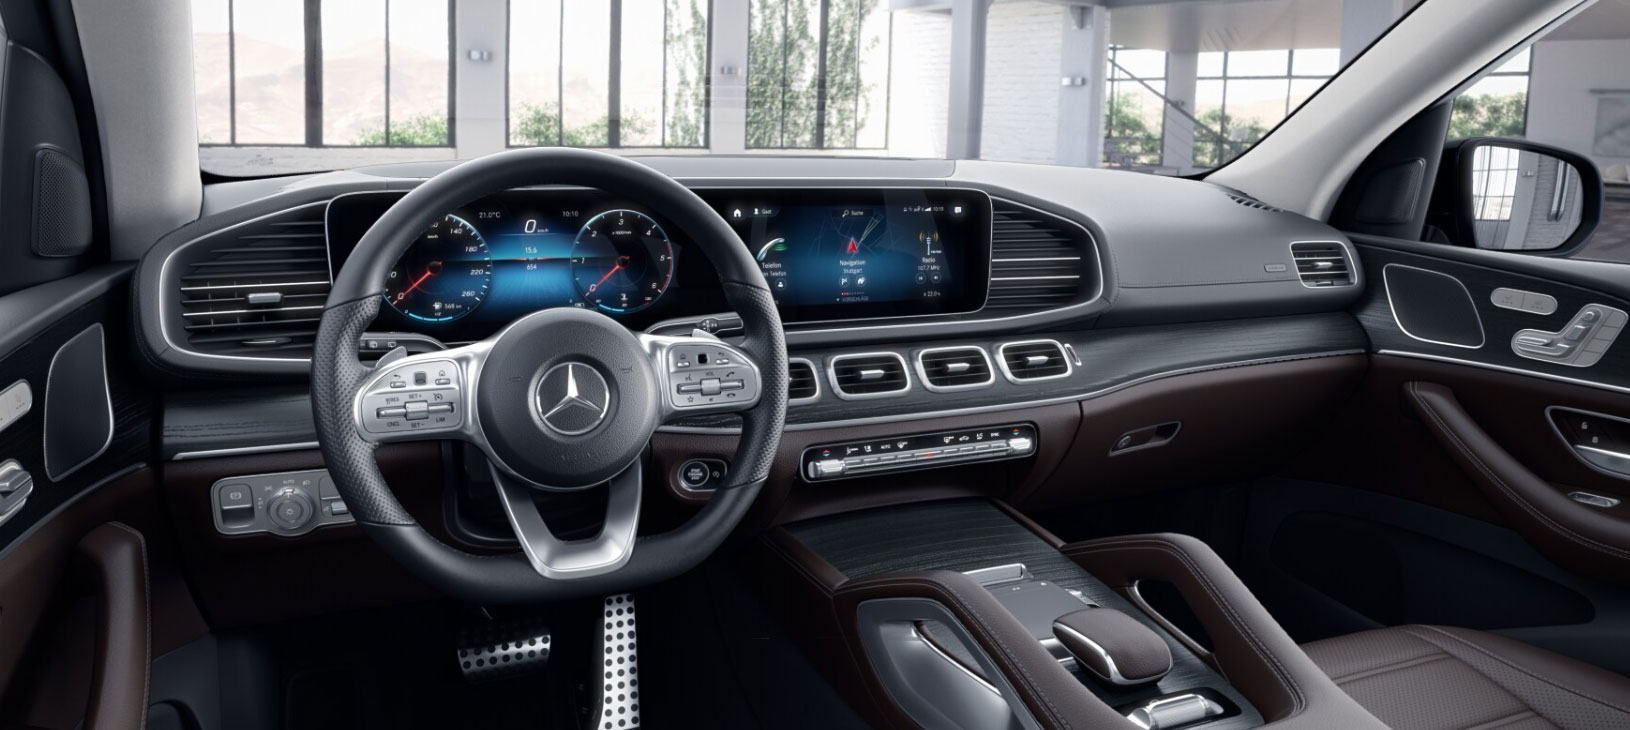 Mercedes-Benz GLS 2019 салон